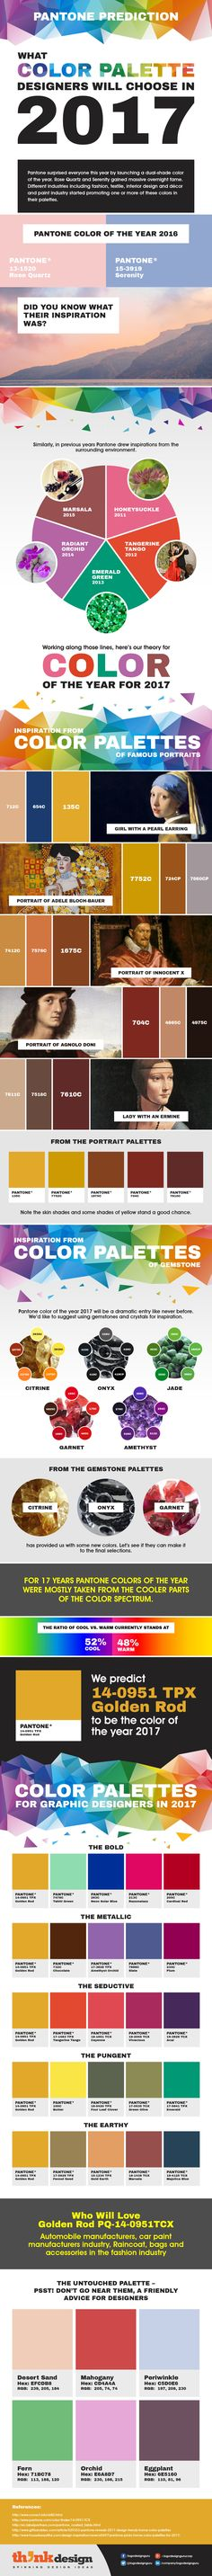 2a-Infographic-PANTONE-prediction-color-palettes-designers-choose-in-2017.jpg 1200×14568 pikseliä